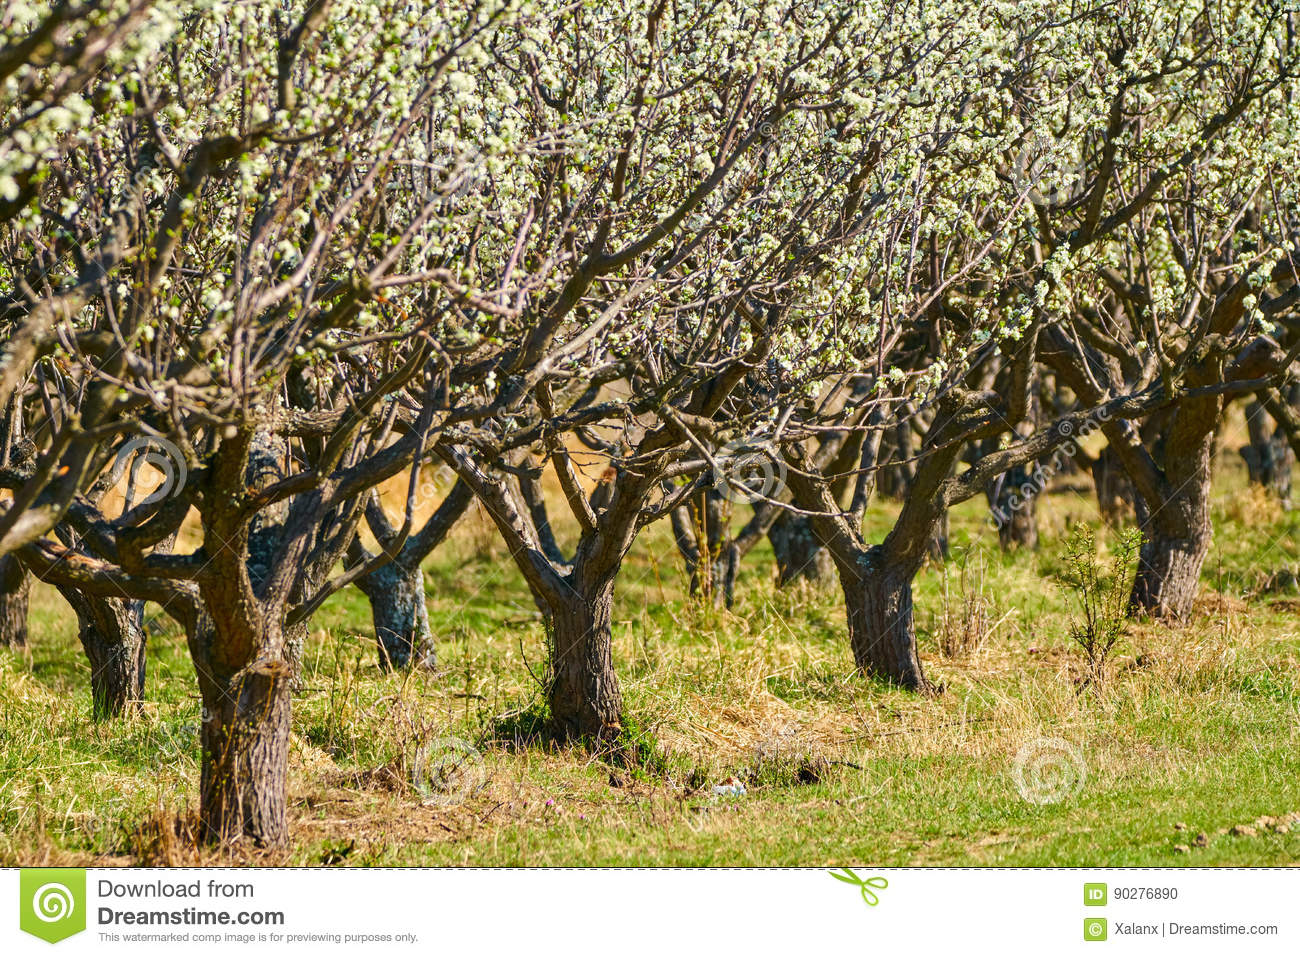 Orchard of plum trees stock photo. Image of garden, industry - 90276890